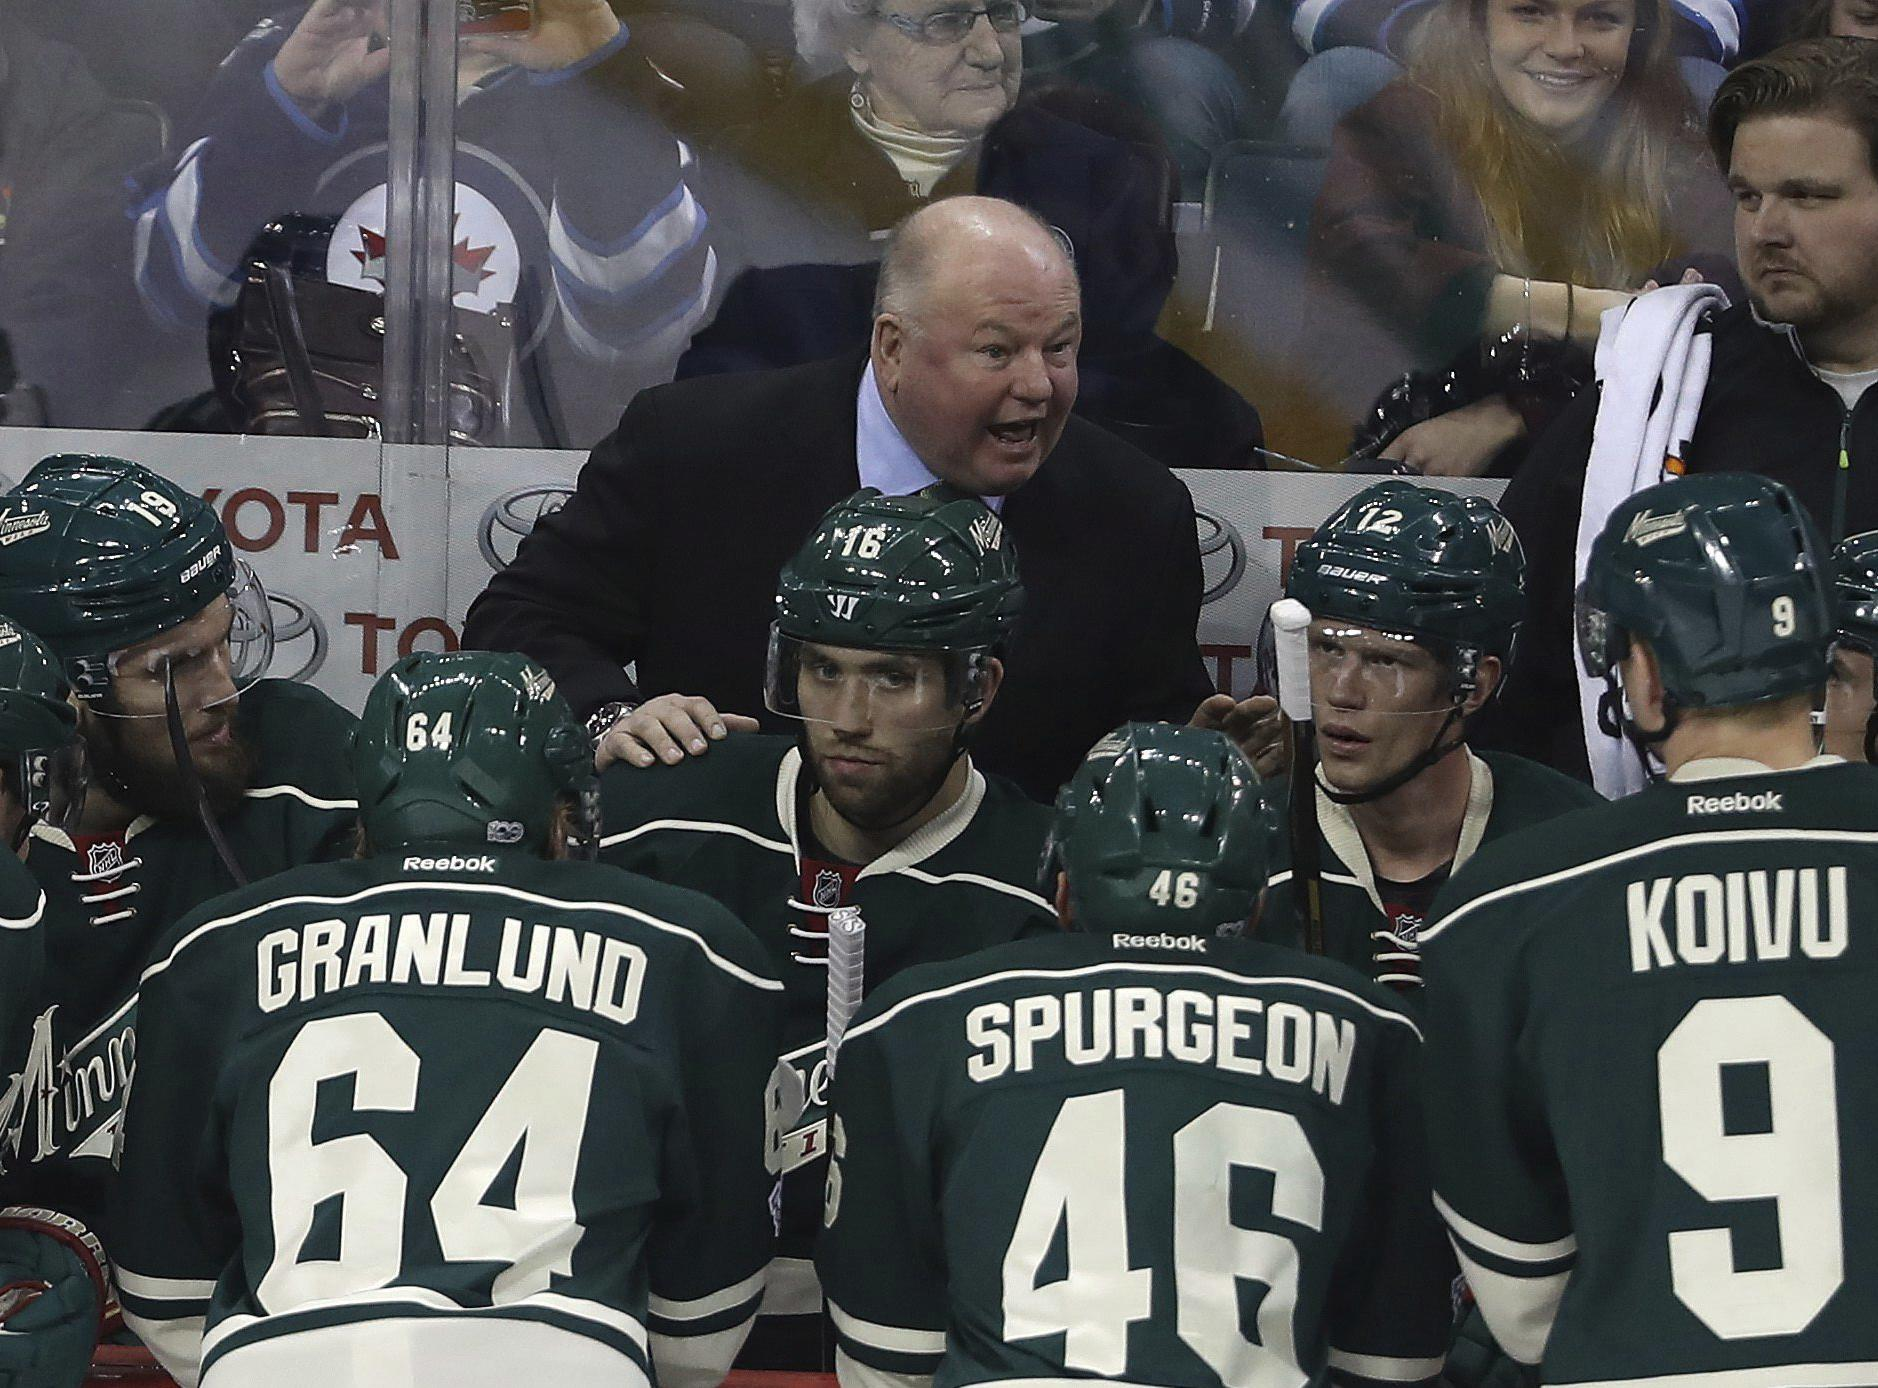 Playoffs_16_degrees_of_boudreau_hockey_97615